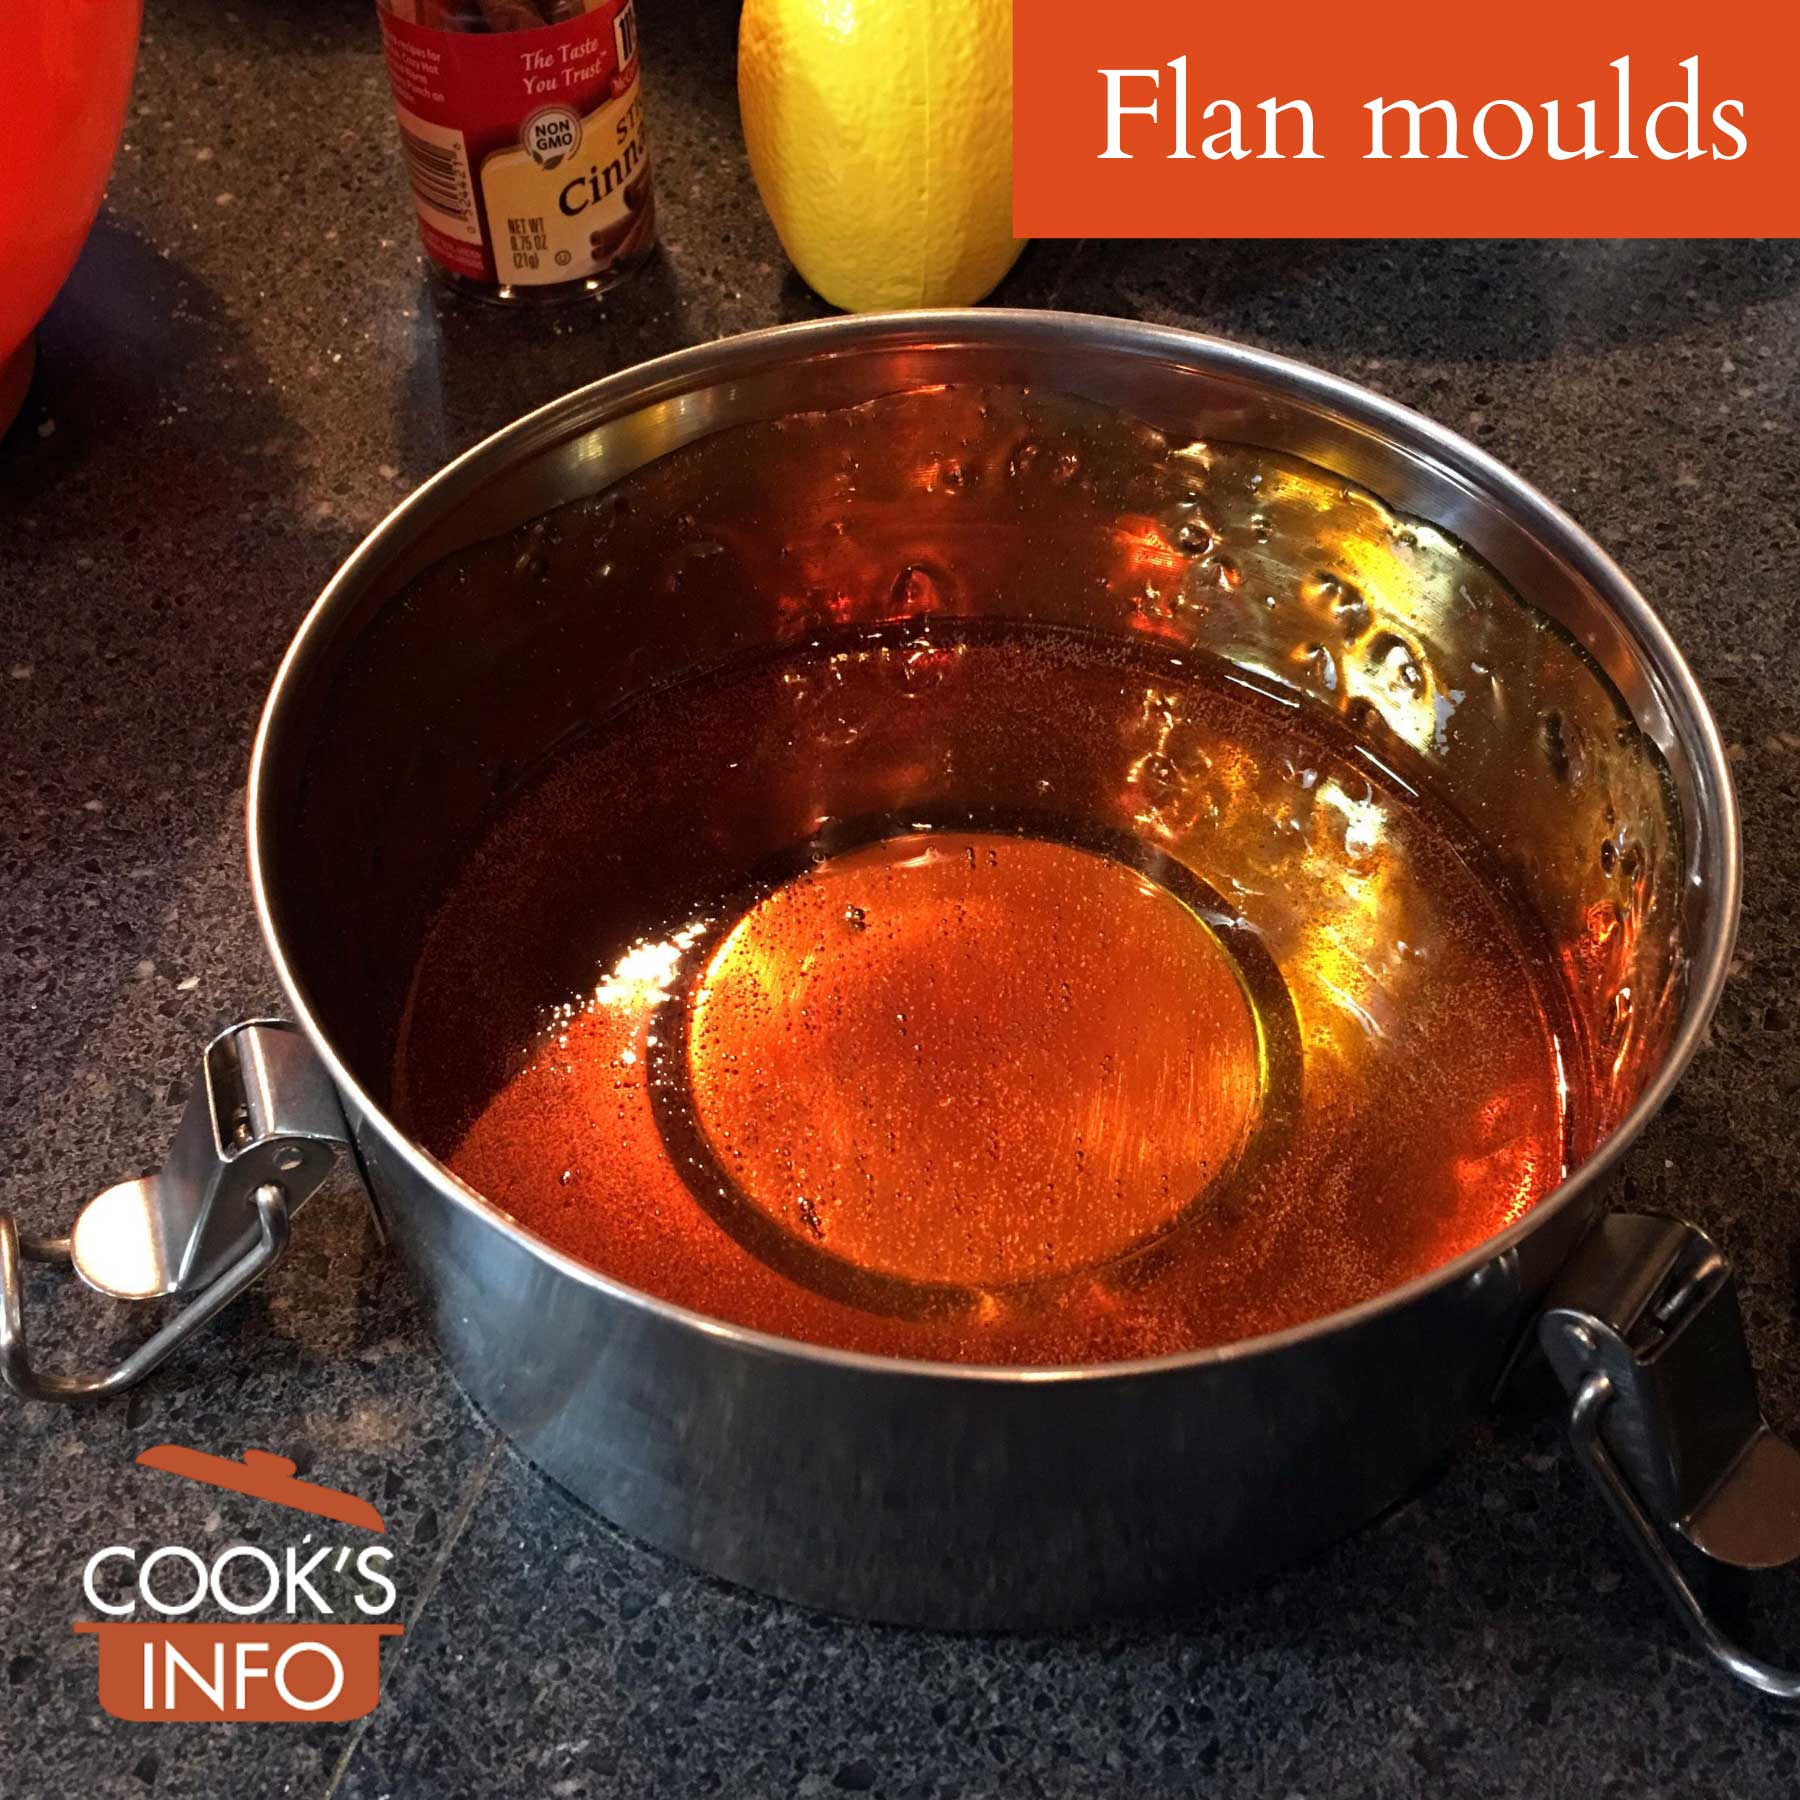 Syrup in flan mould, ready for custard mixture.